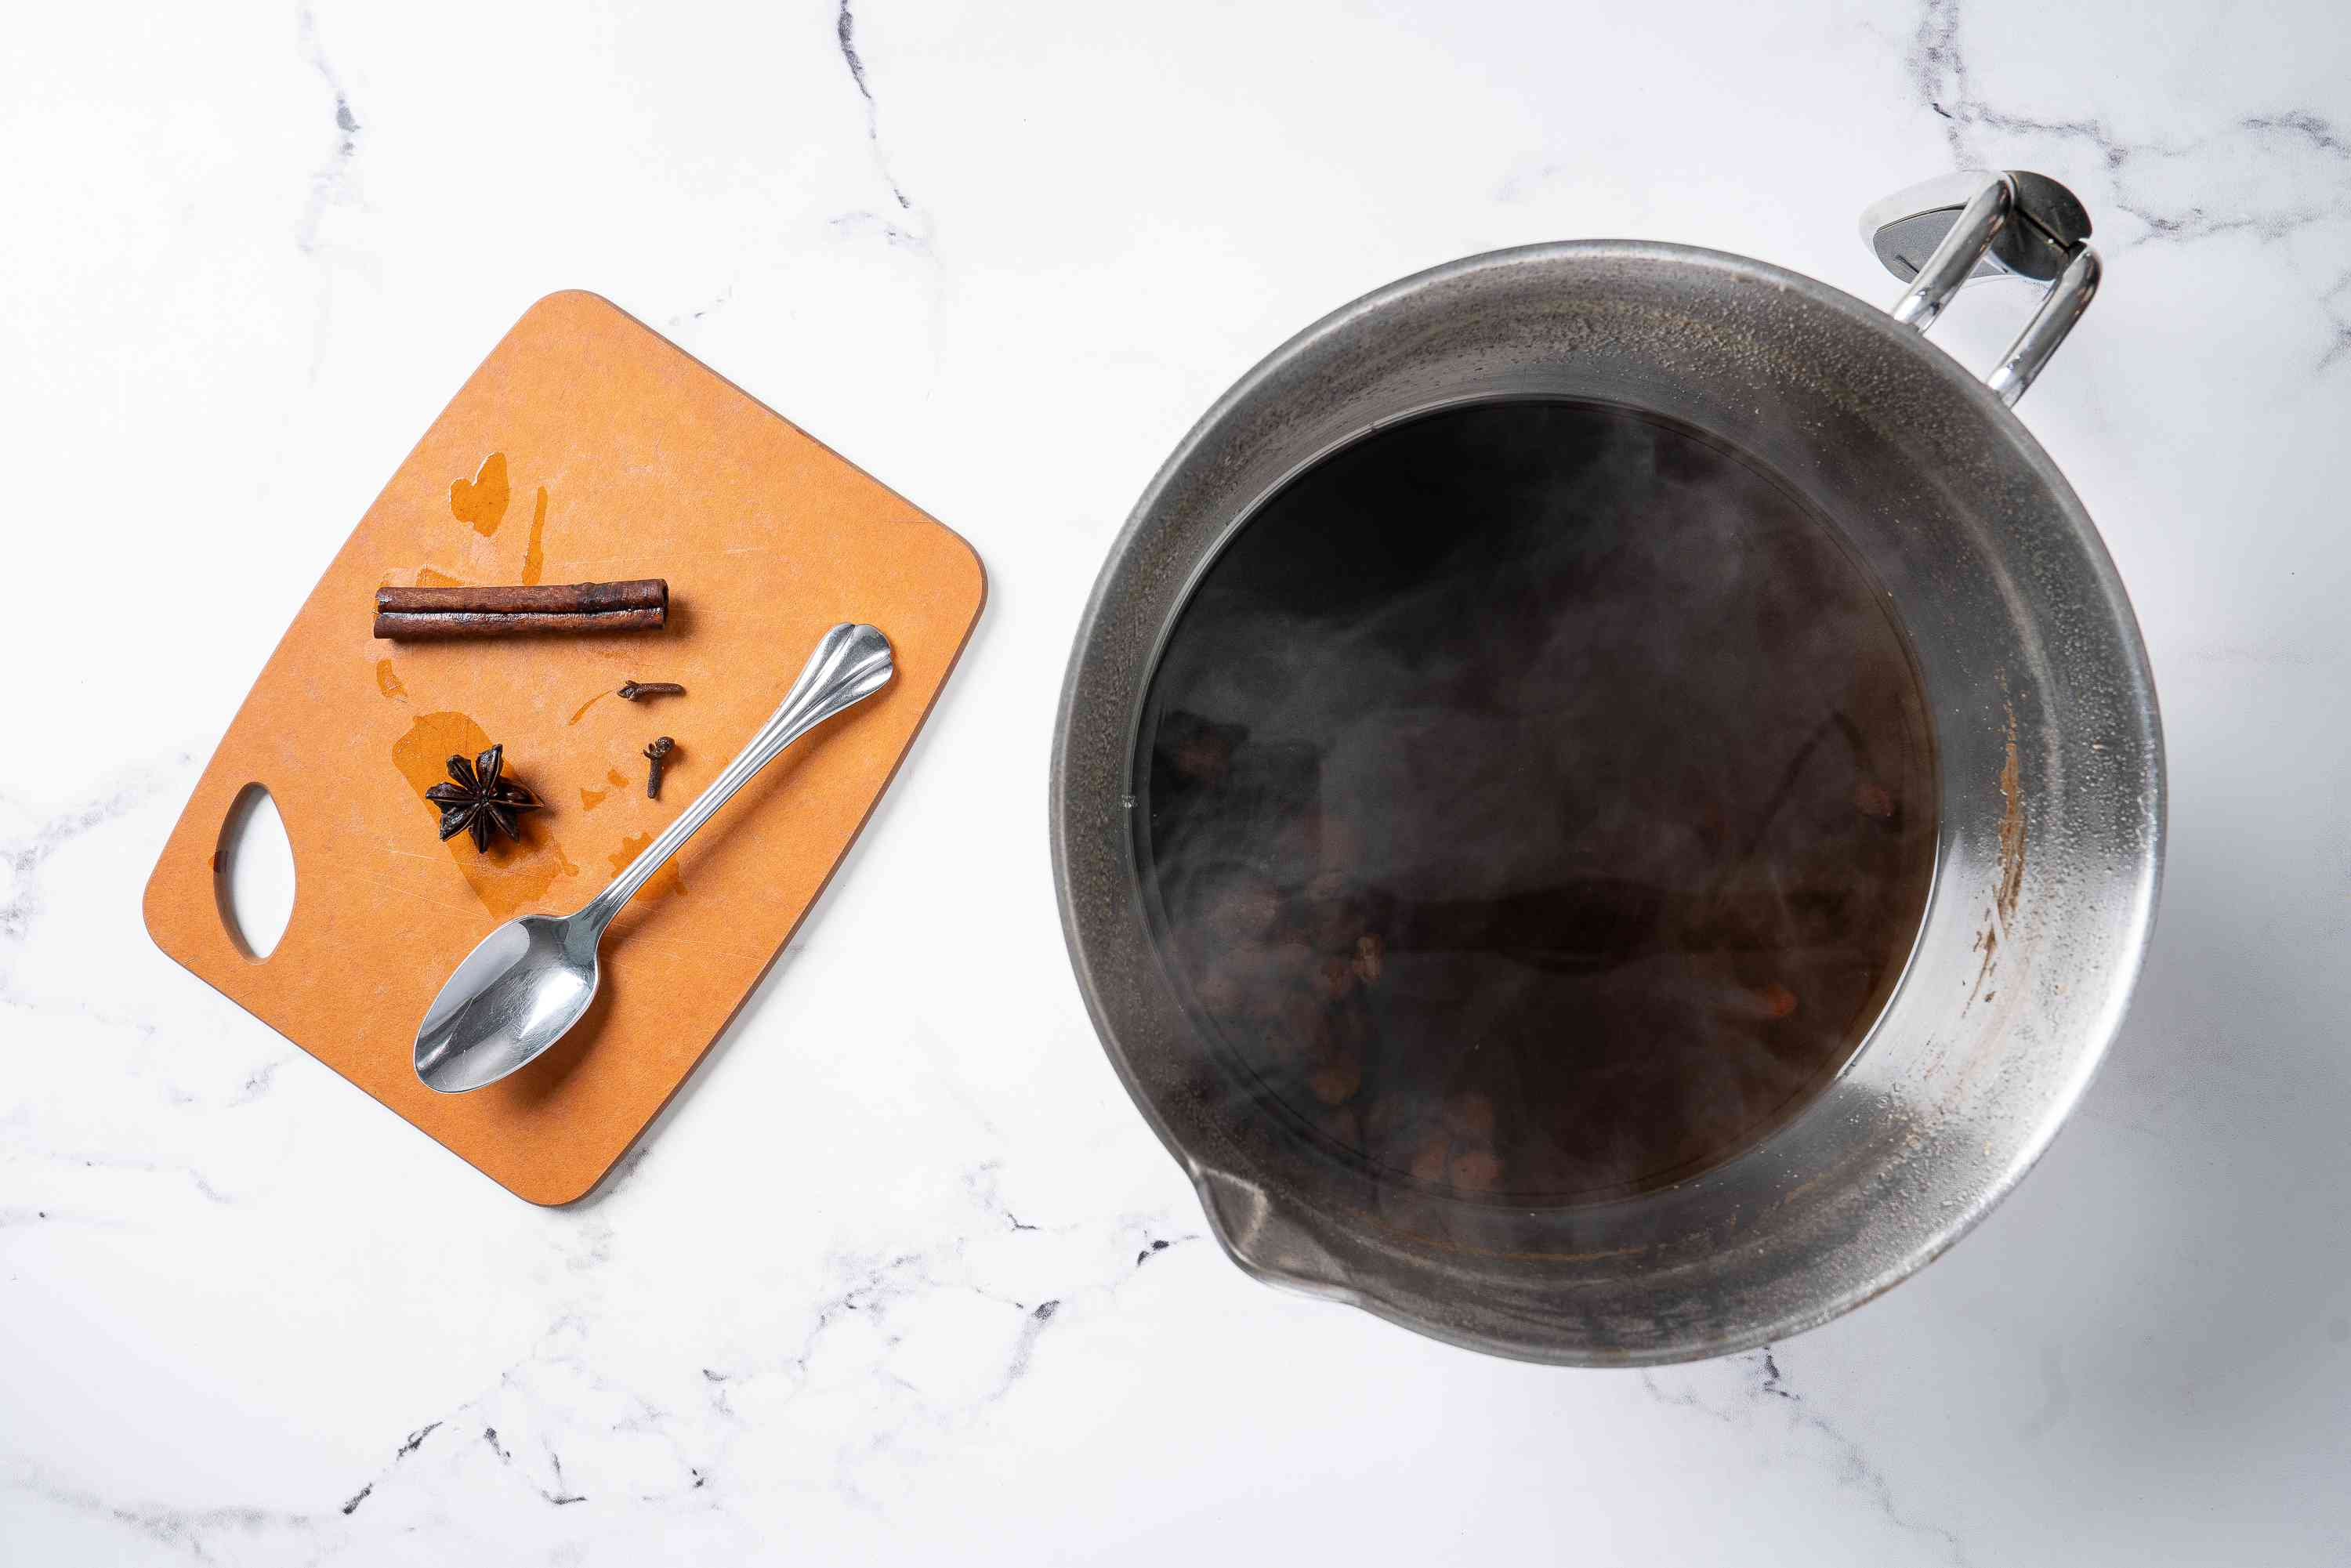 Hot syrup in a saucepan with spices removed